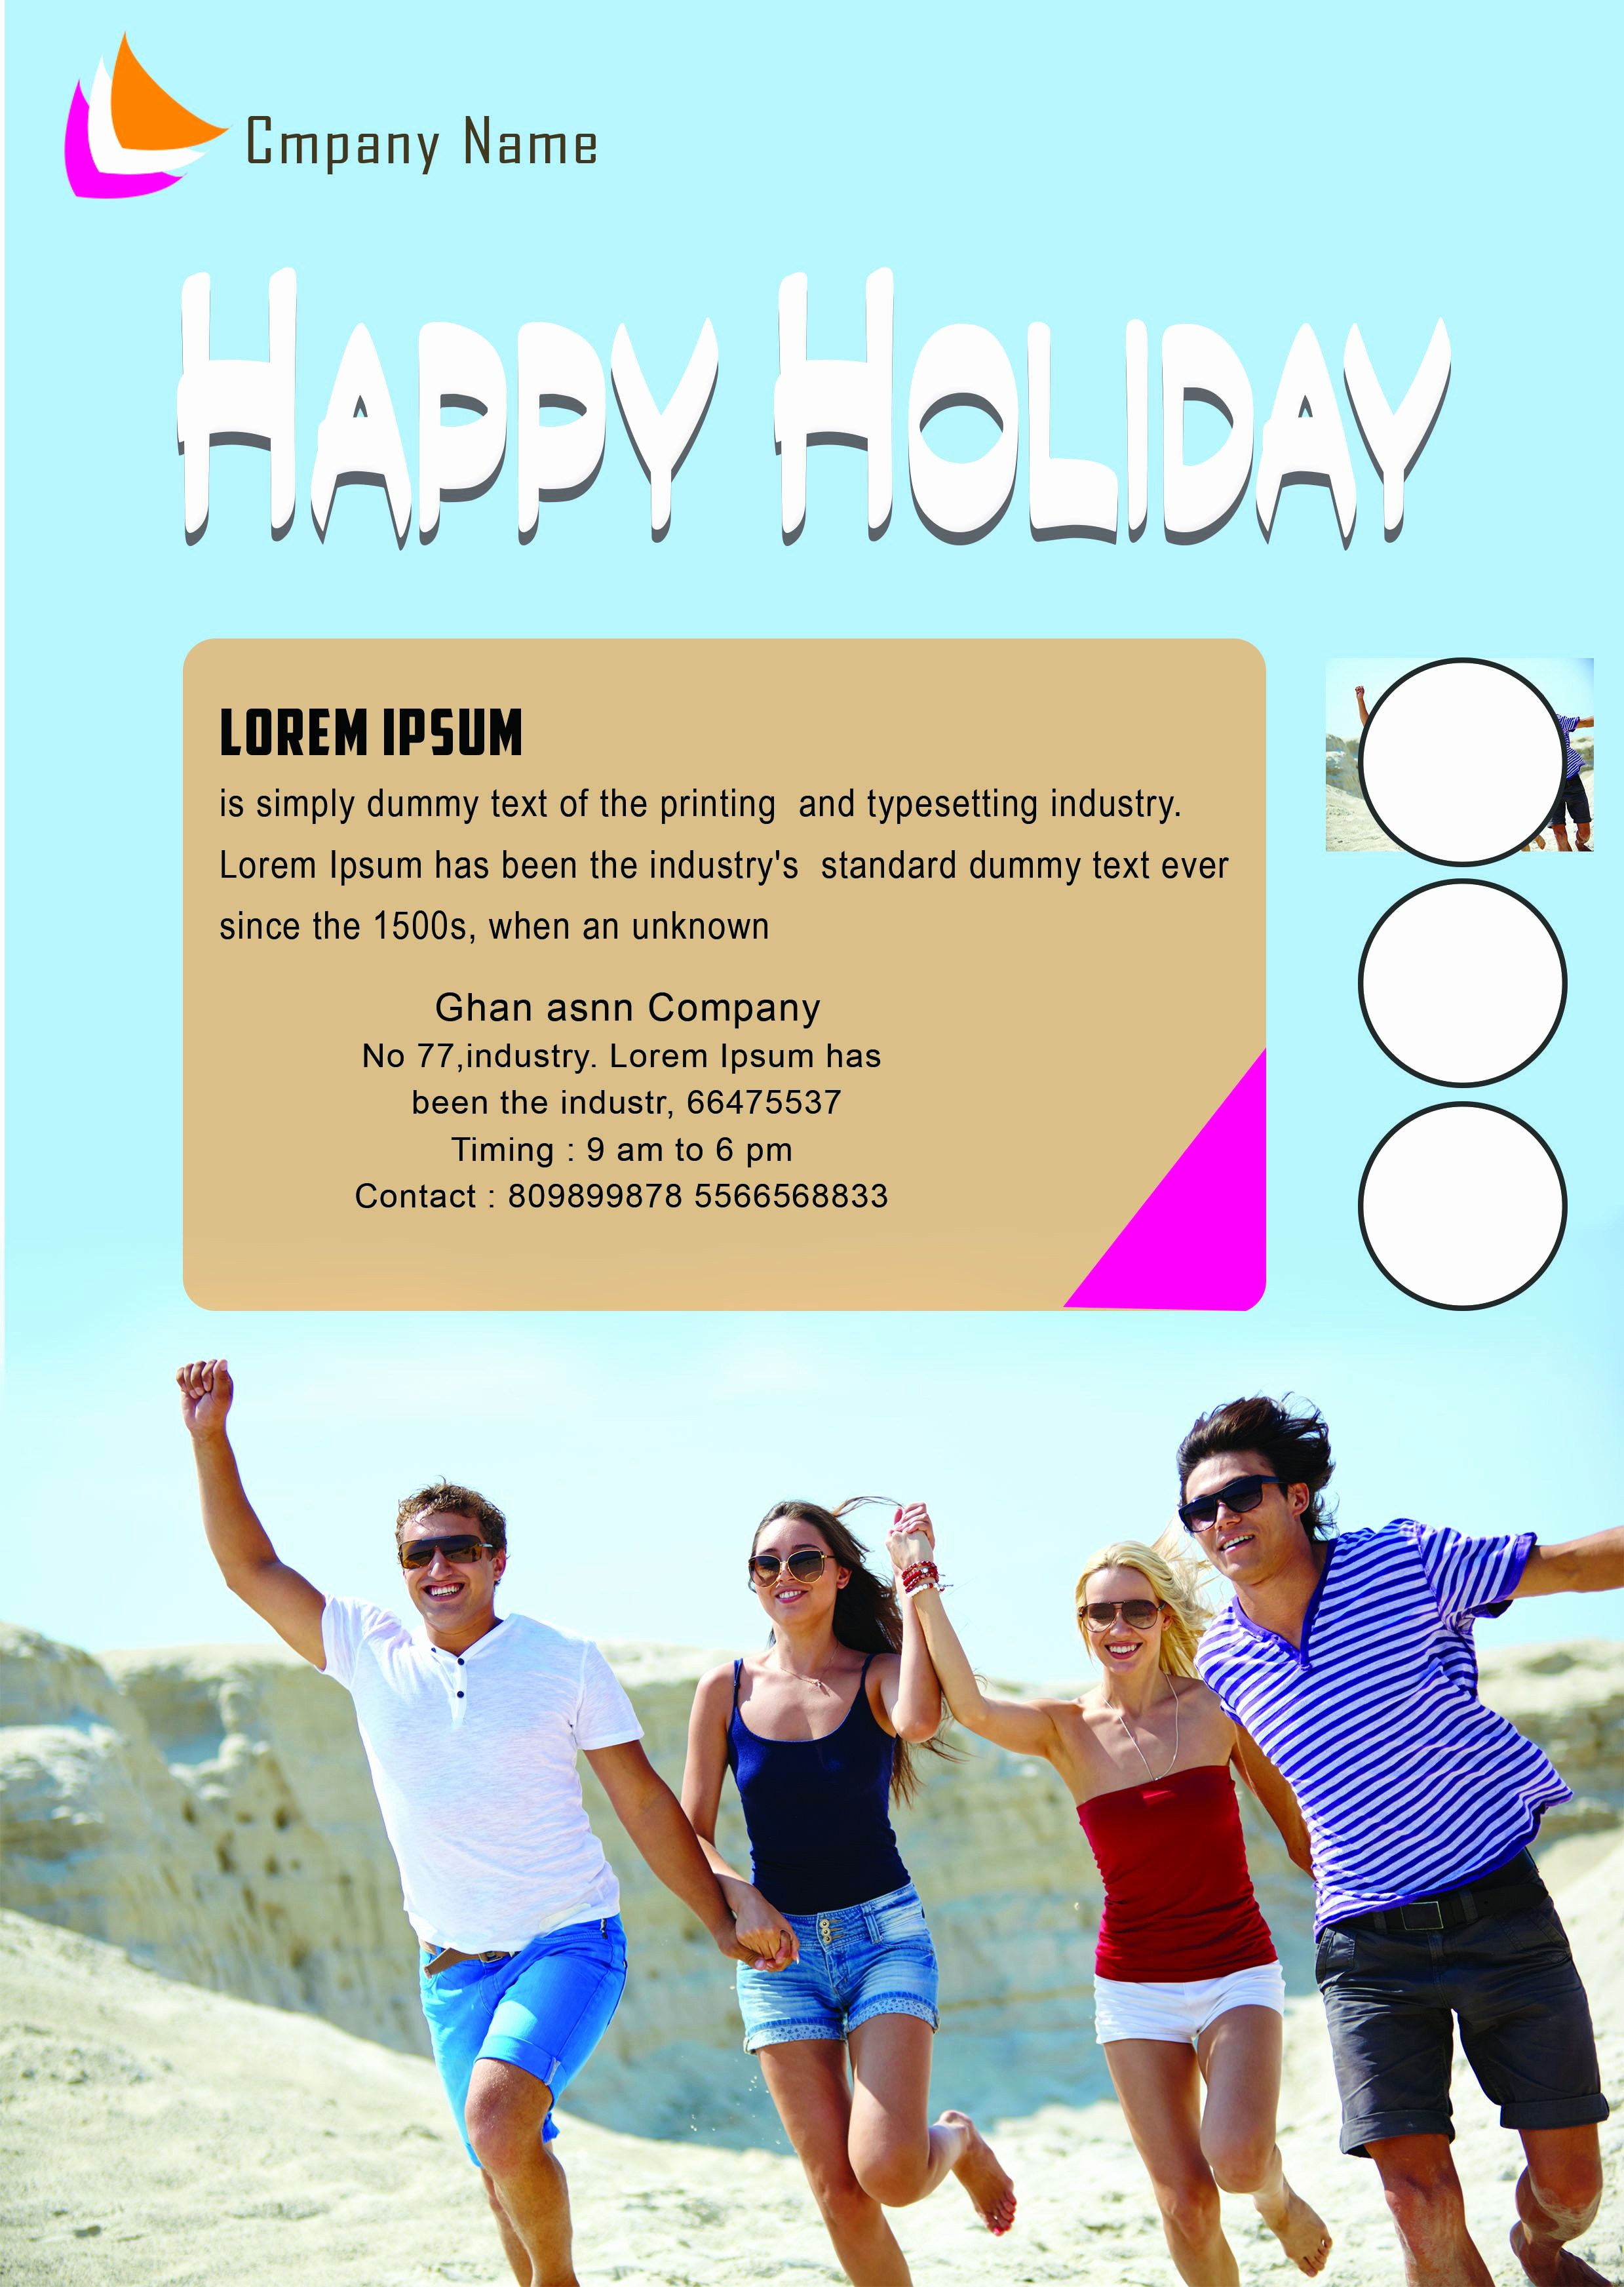 Free Holiday Flyer Templates Word Beautiful Free Holiday Flyer Templates Word Portablegasgrillweber